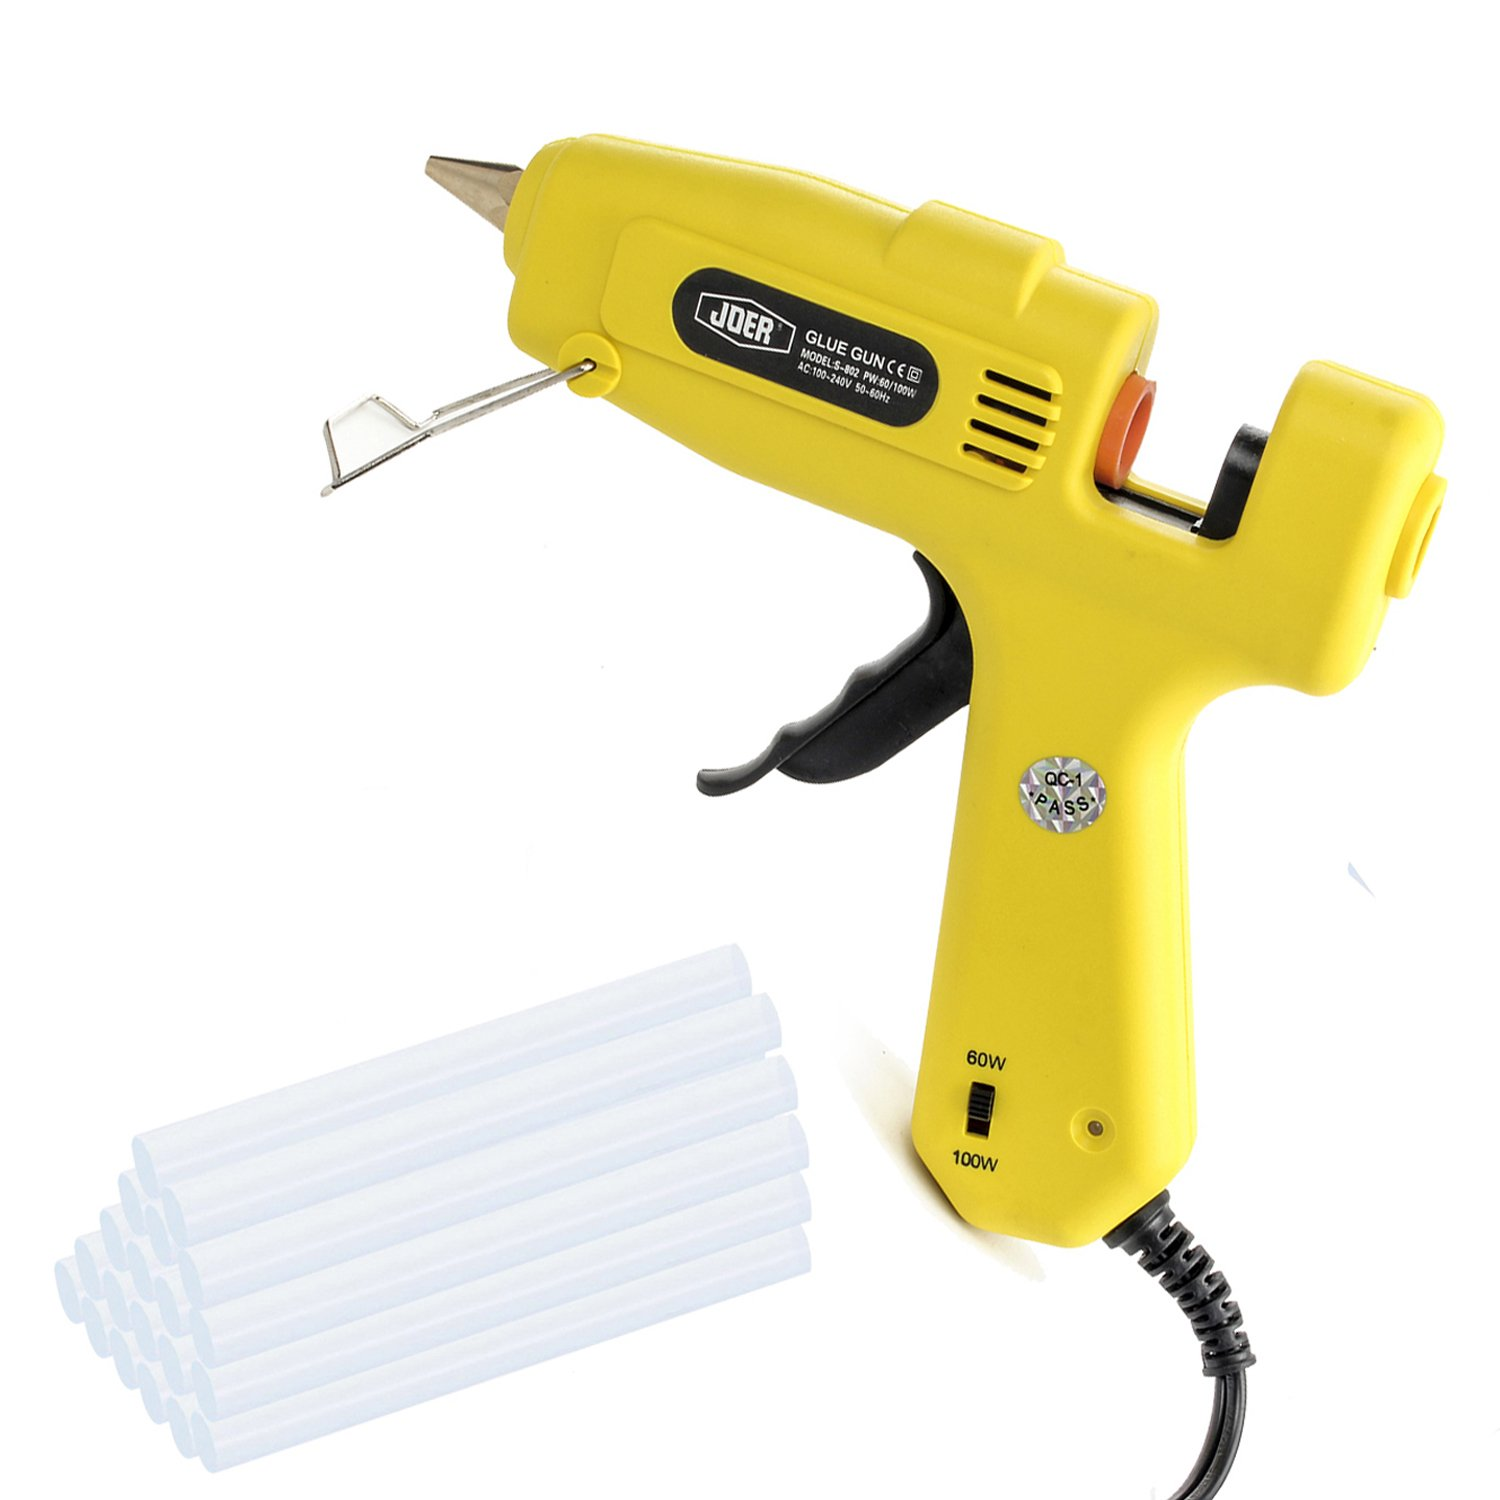 Glue Gun, 60W/100W Dual Power High Temperature Hot Melt Glue Gun Kit with 20 pcs Long Size Glue Sticks (0.43'' x 8